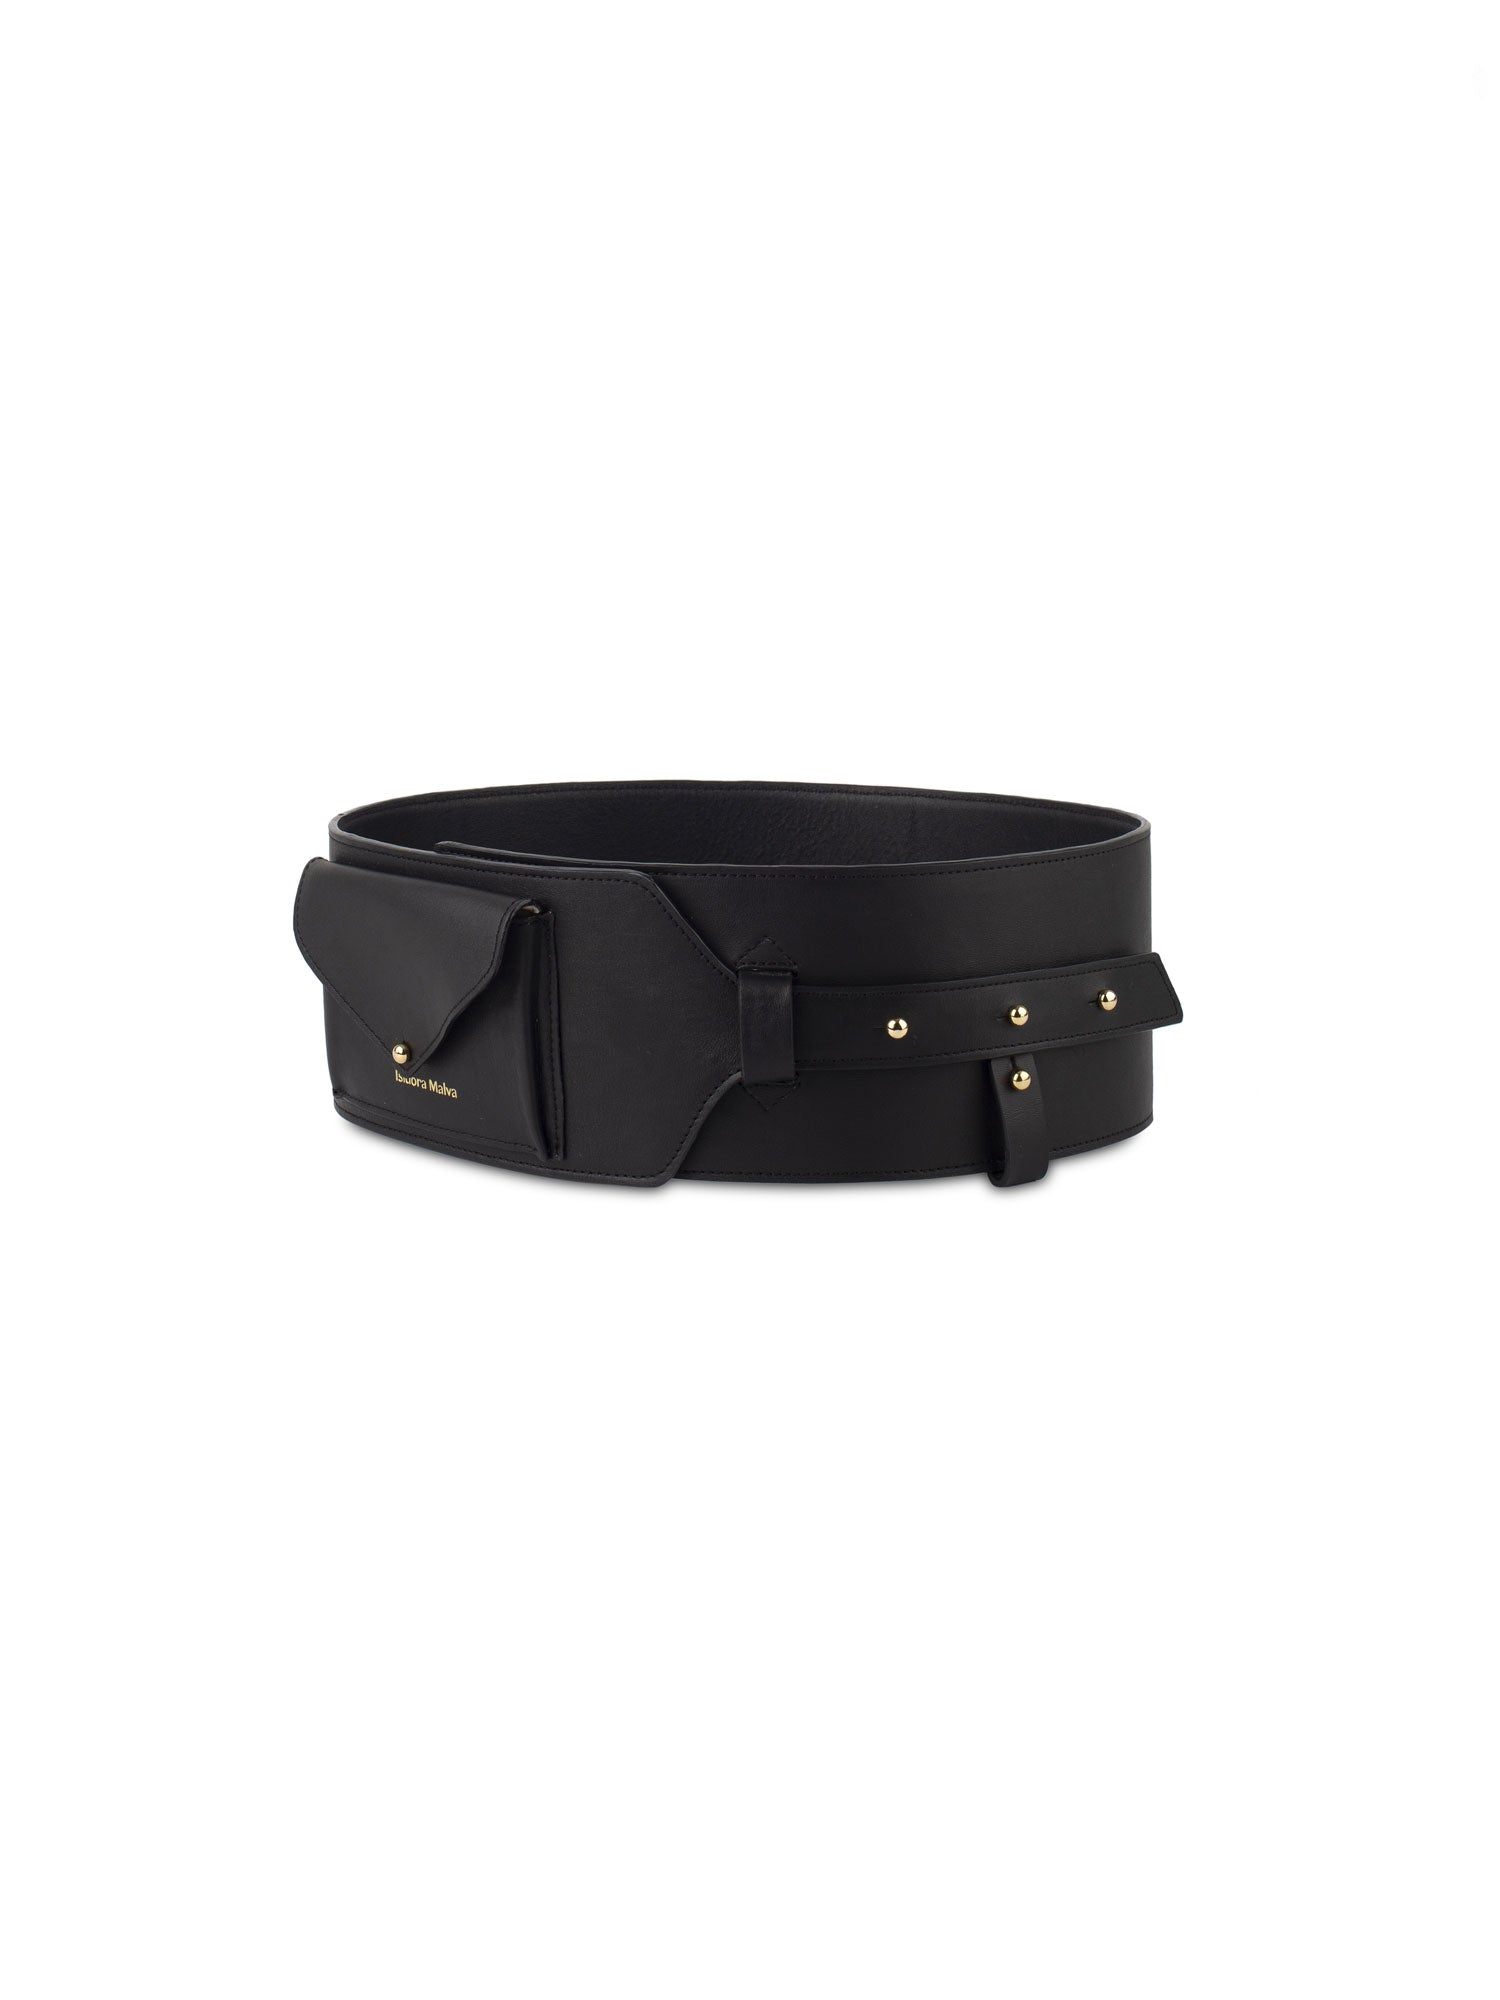 Cienaga Belt Black